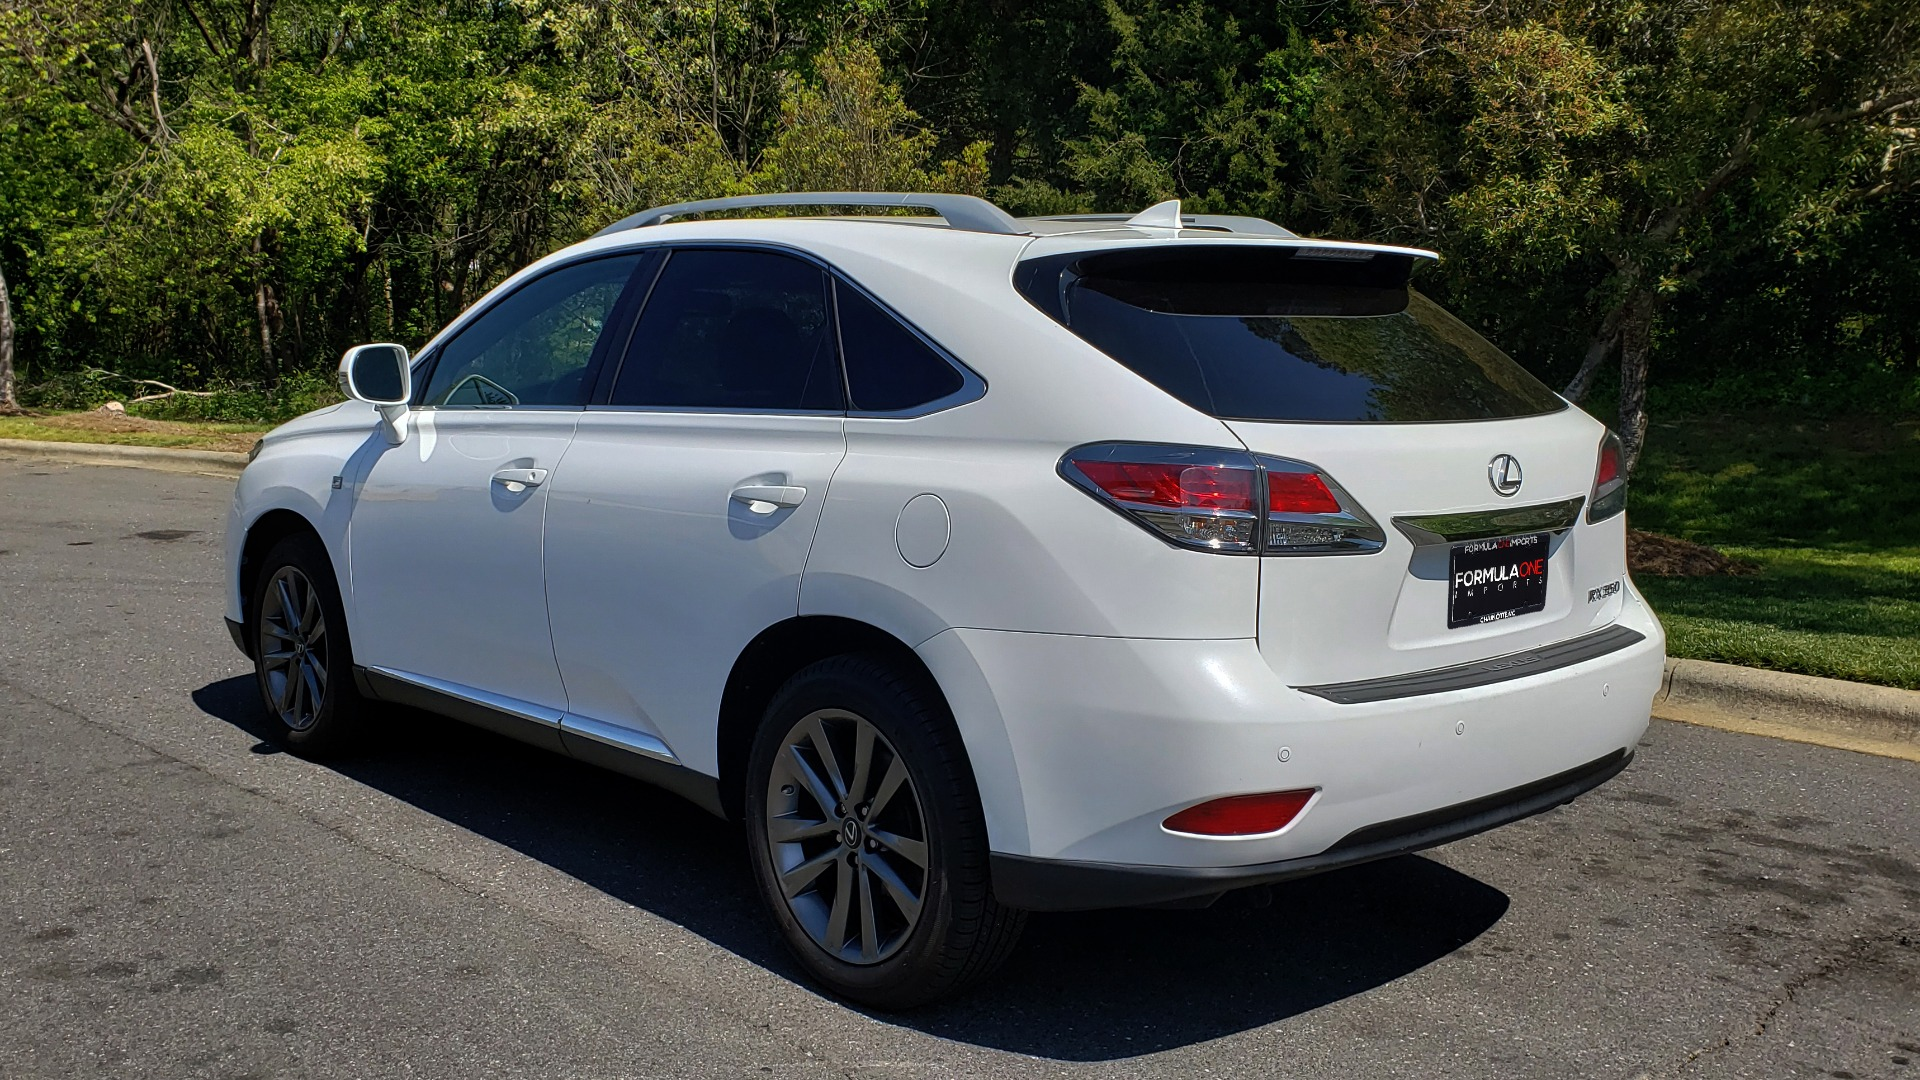 Used 2015 Lexus RX 350 AWD F-SPORT / NAV / SUNBROOF / REARVIEW / BSM / PARK ASST for sale Sold at Formula Imports in Charlotte NC 28227 3